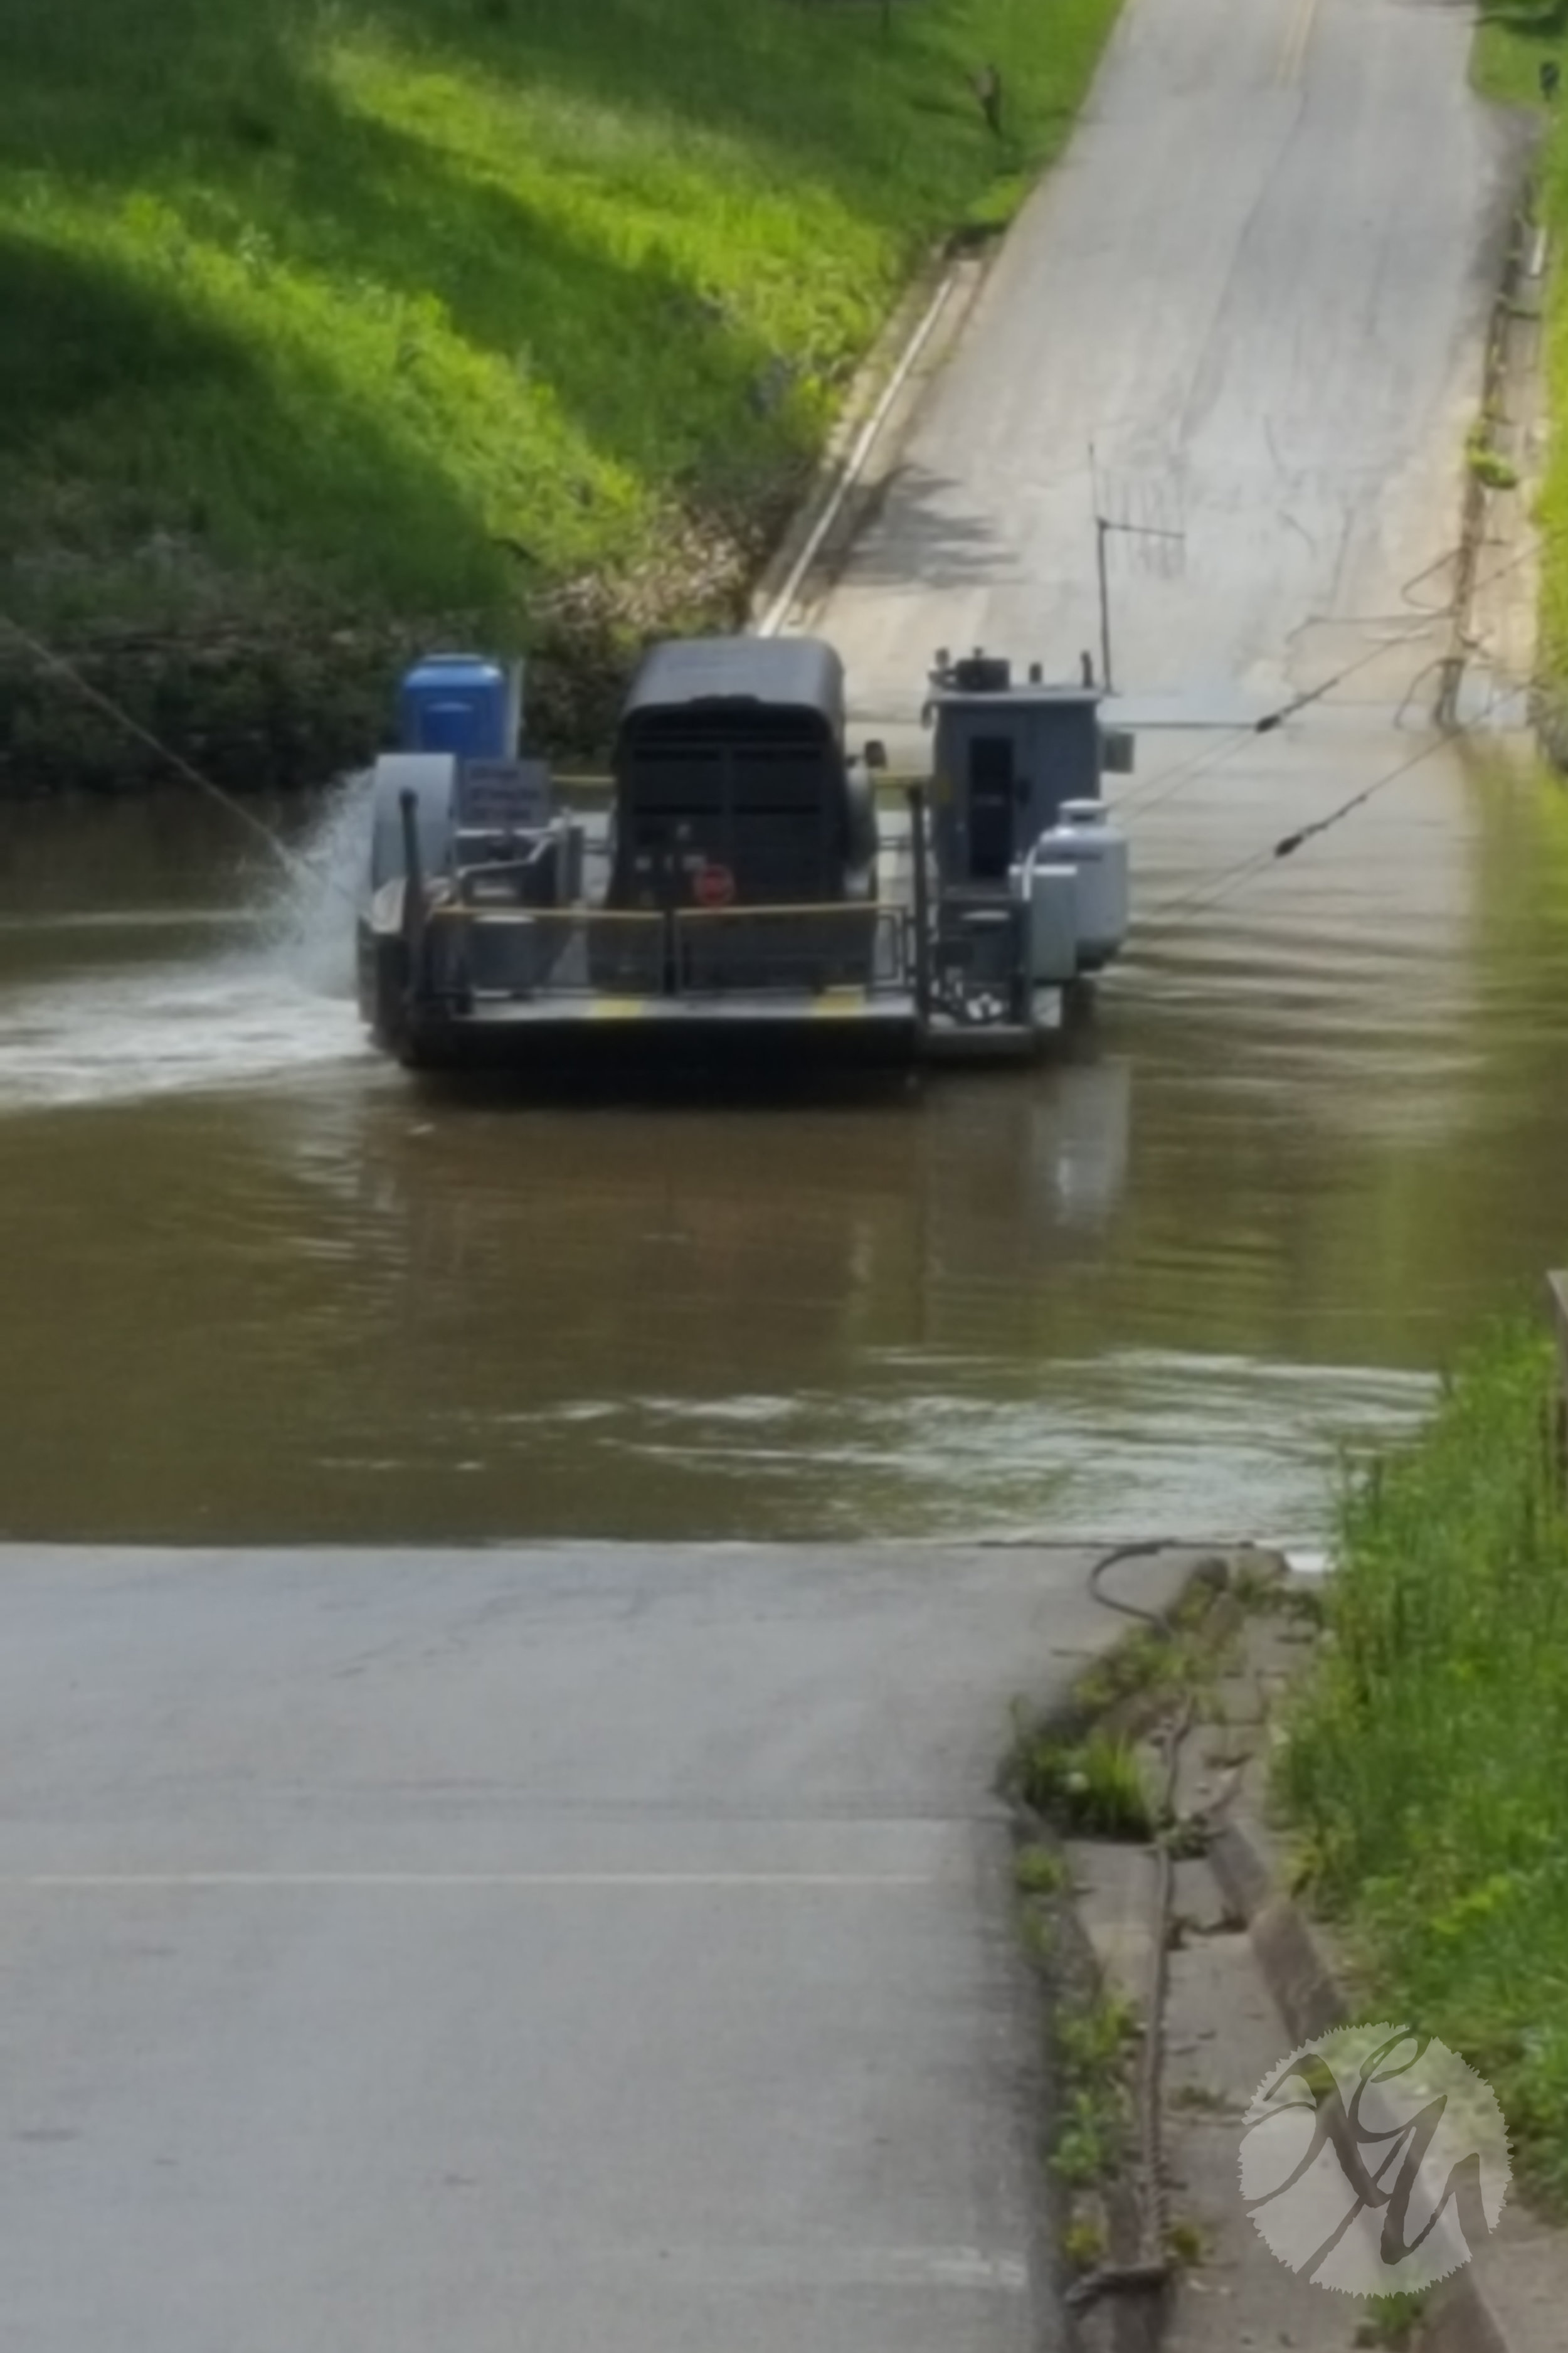 One-car, old-fashioned ferry across the river. It was anchored to guiding wires that stretched high from one side to the other, so even when the river is at flood stage, the road is passable. Simple but smart!